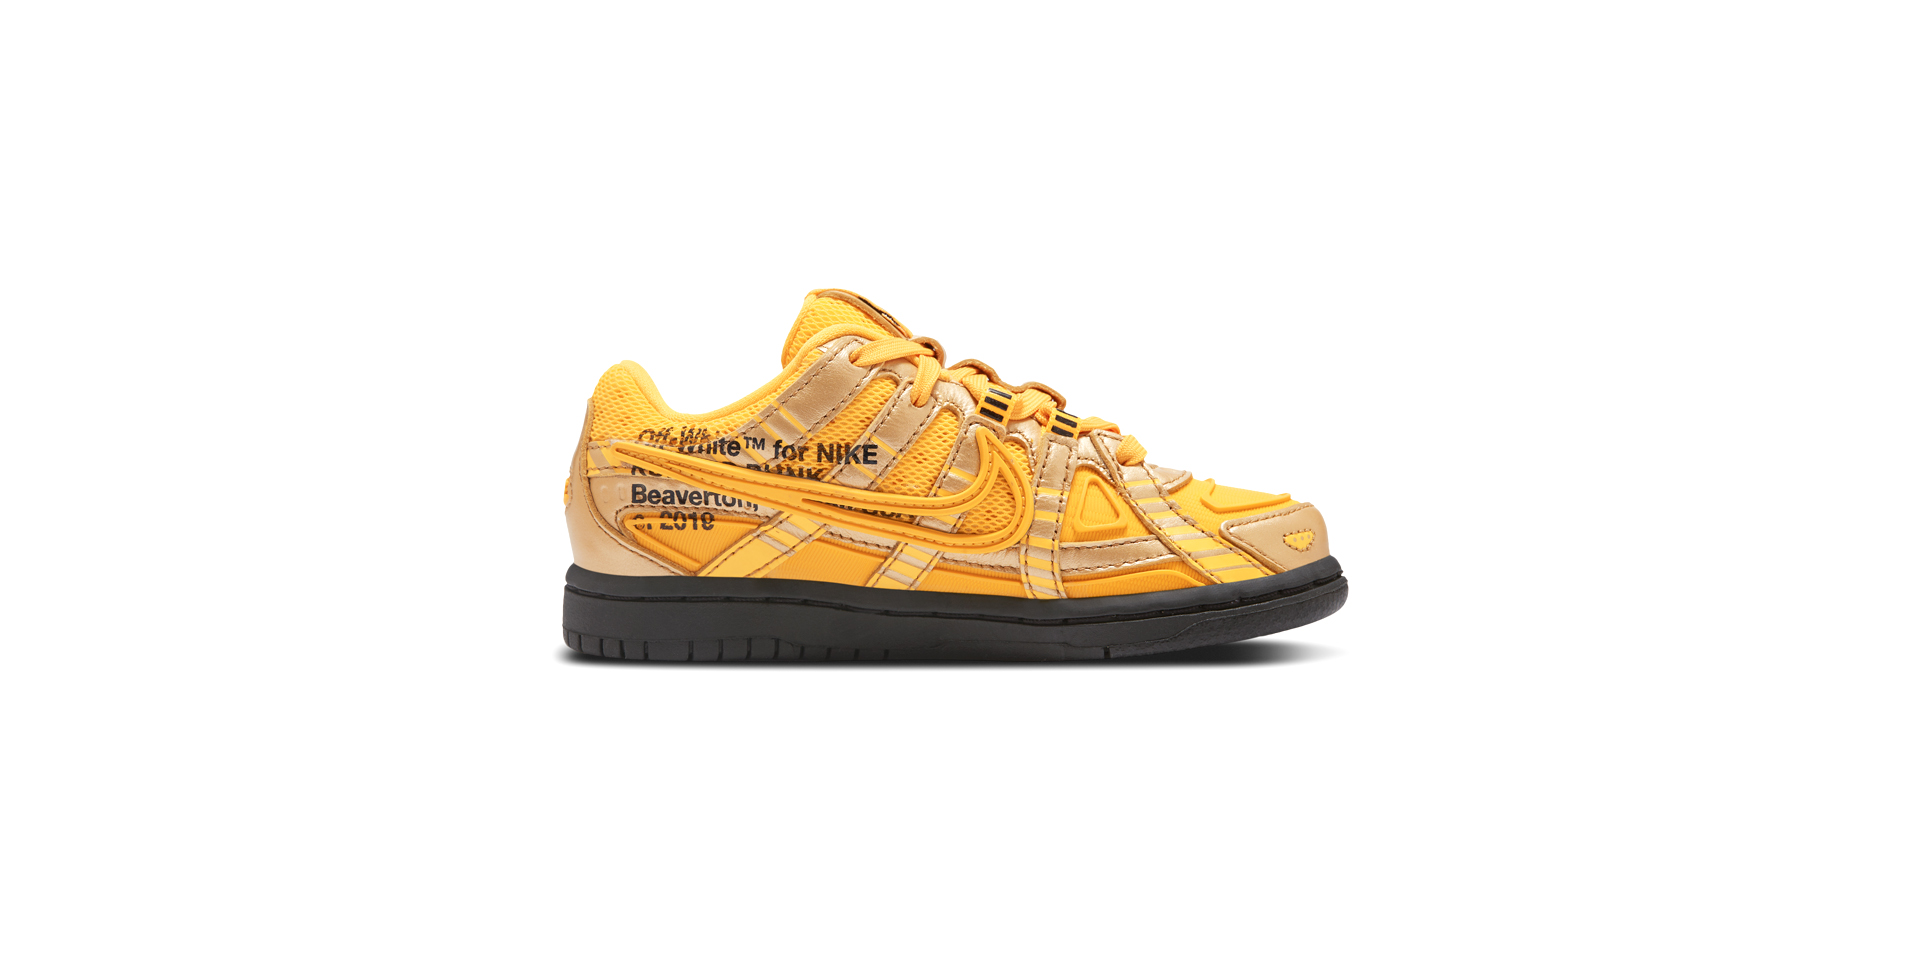 NIKE RUBBER DUNK X OFF-WHITE (PRIMARY SCHOOL) - UNI GOLD/BLK